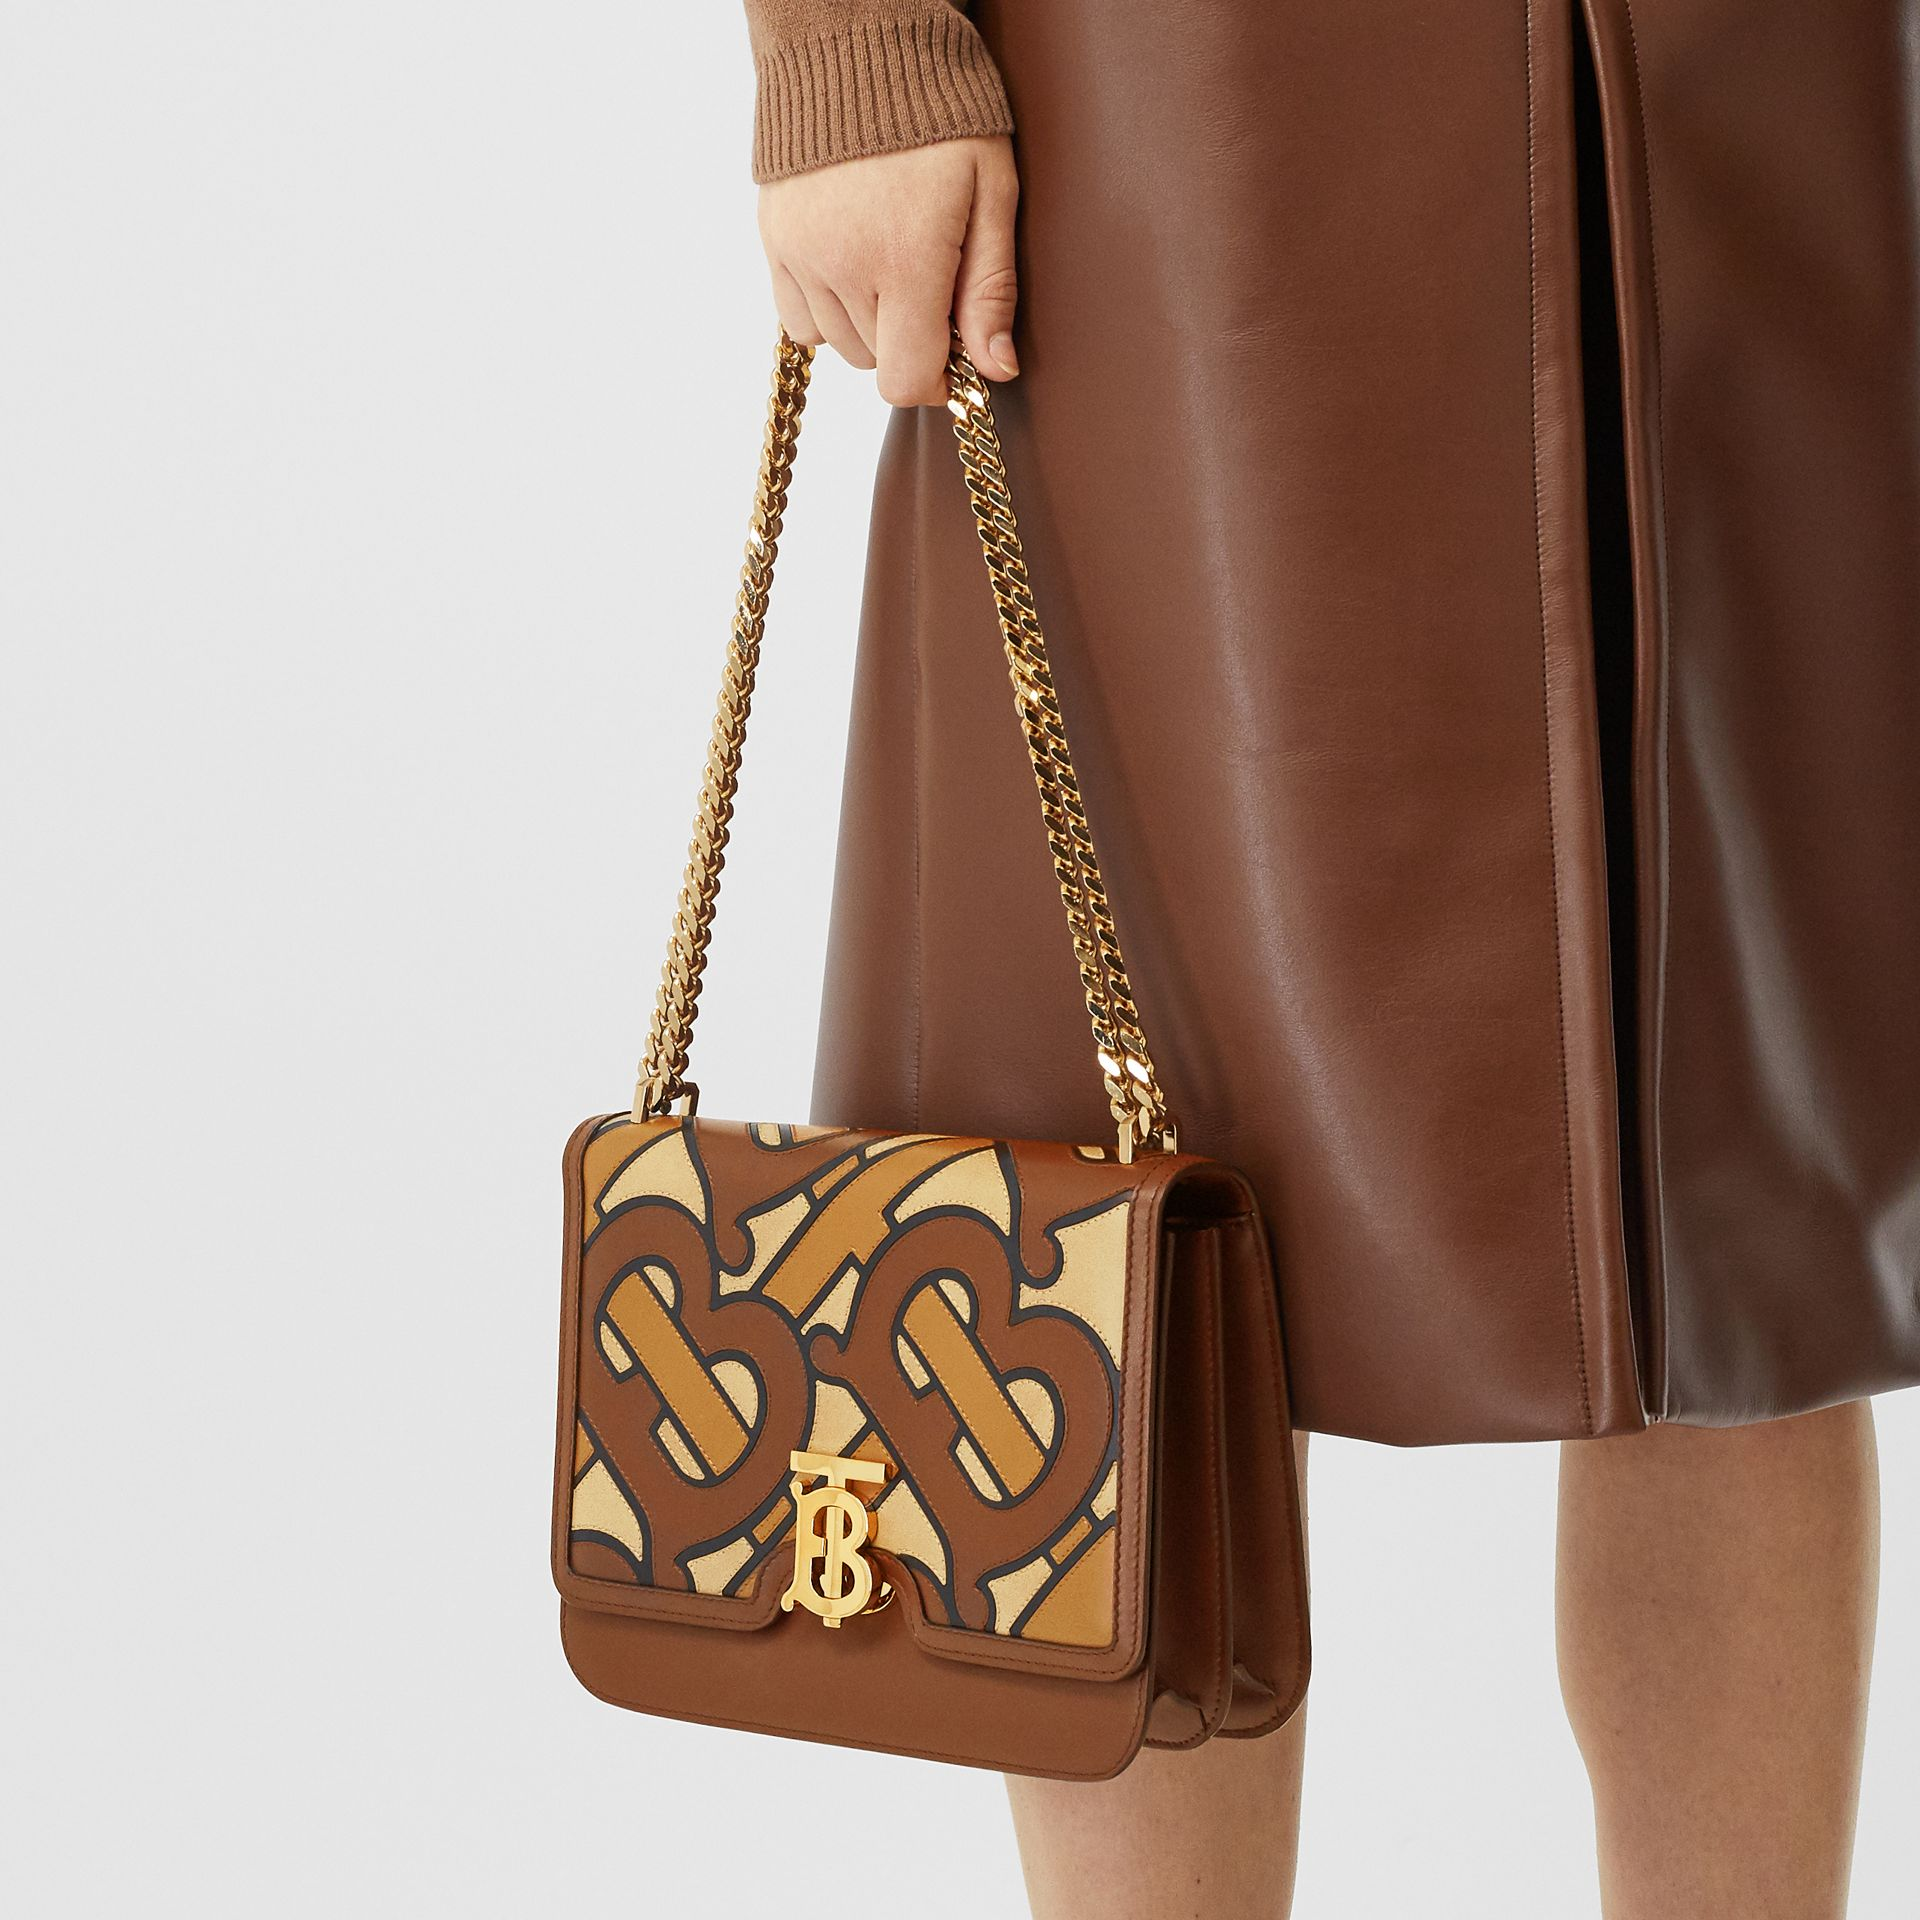 Medium Monogram Appliqué Leather TB Bag in Brown - Women | Burberry - gallery image 2